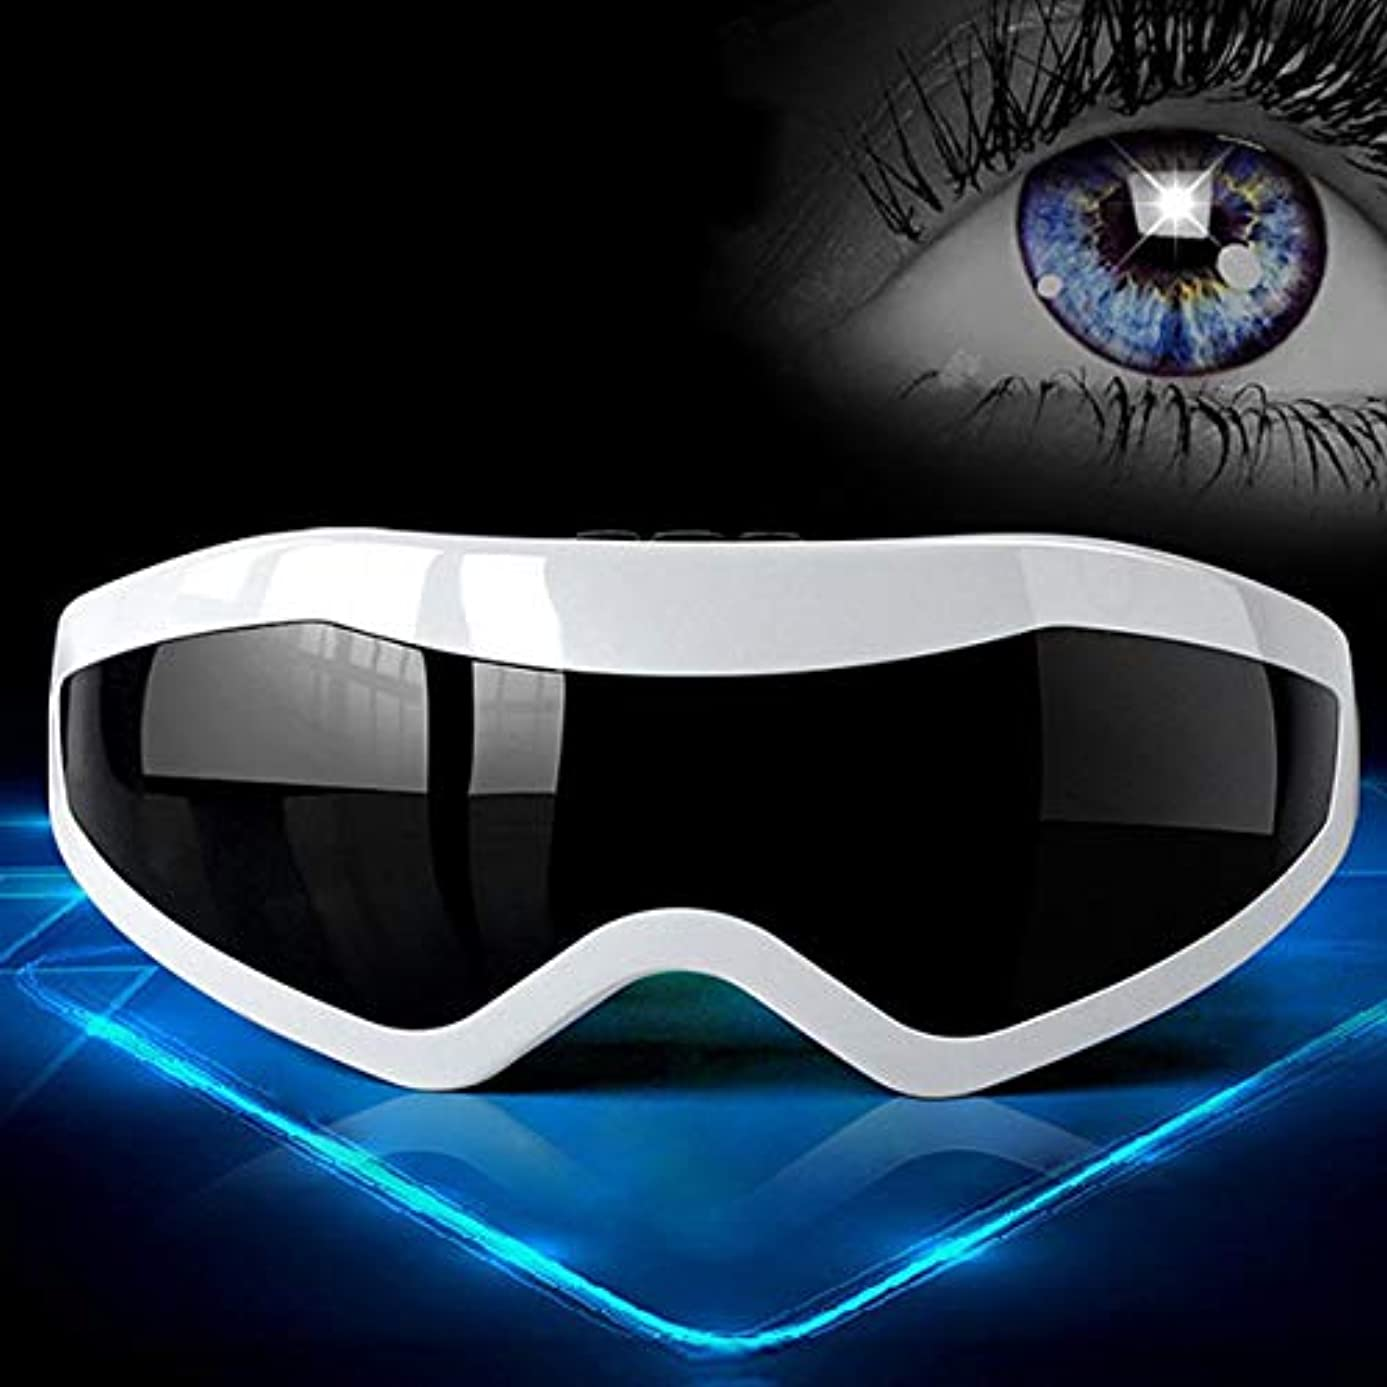 羊の繁雑値Comfortable Electric Eye Massager Men Women Eye Brain Relax Magnetic Eye Health Care Massager Instrument Best...